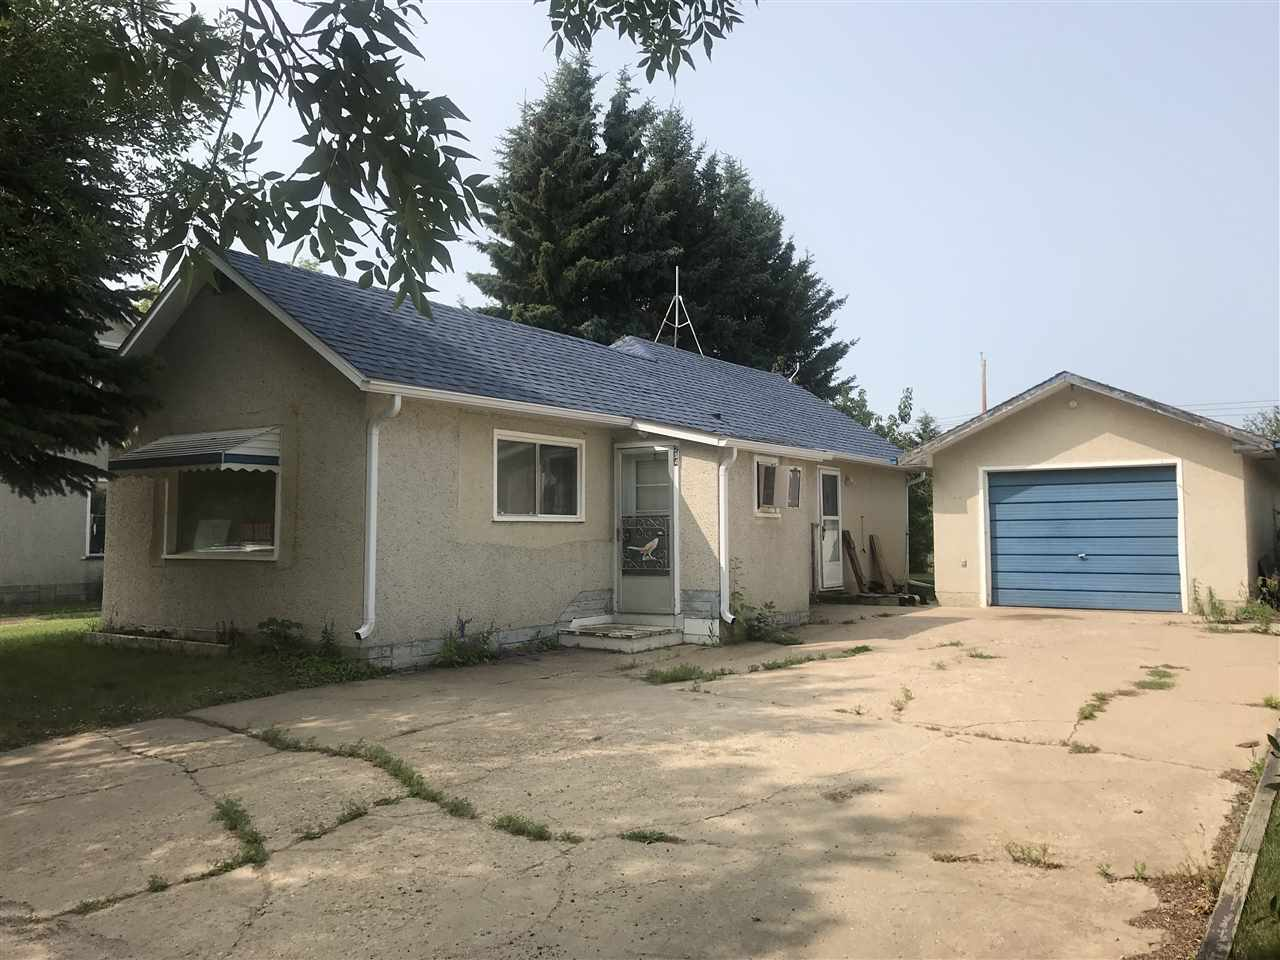 Tidy 2 bedroom, 1 bath home with single car garage looking for new owners!   Located in Thorhild - a short 45 minute drive from Fort Saskatchewan/Edmonton - this home is the perfect affordable property.  The main floor features a large living room, an open kitchen with a good amount of cupboard/counter top space, two nicely sized bedrooms and a 4 piece bath.  The partial basement houses the laundry, cold room and tonnes of storage space.   Recent upgrades to the home include shingles, soffit and fascia on the house and a HE furnace.  The 14x24 single car garage with cement floor is just off the side door, providing easy to accessibility to and from the house and garage.  And if you want to just park in the front drive, you'll enjoy the cement driveway too!   To complete this tidy property is the mature yard that features a garden spot, a producing plum tree, a variety of perennials and a garden shed for all your garden tools.